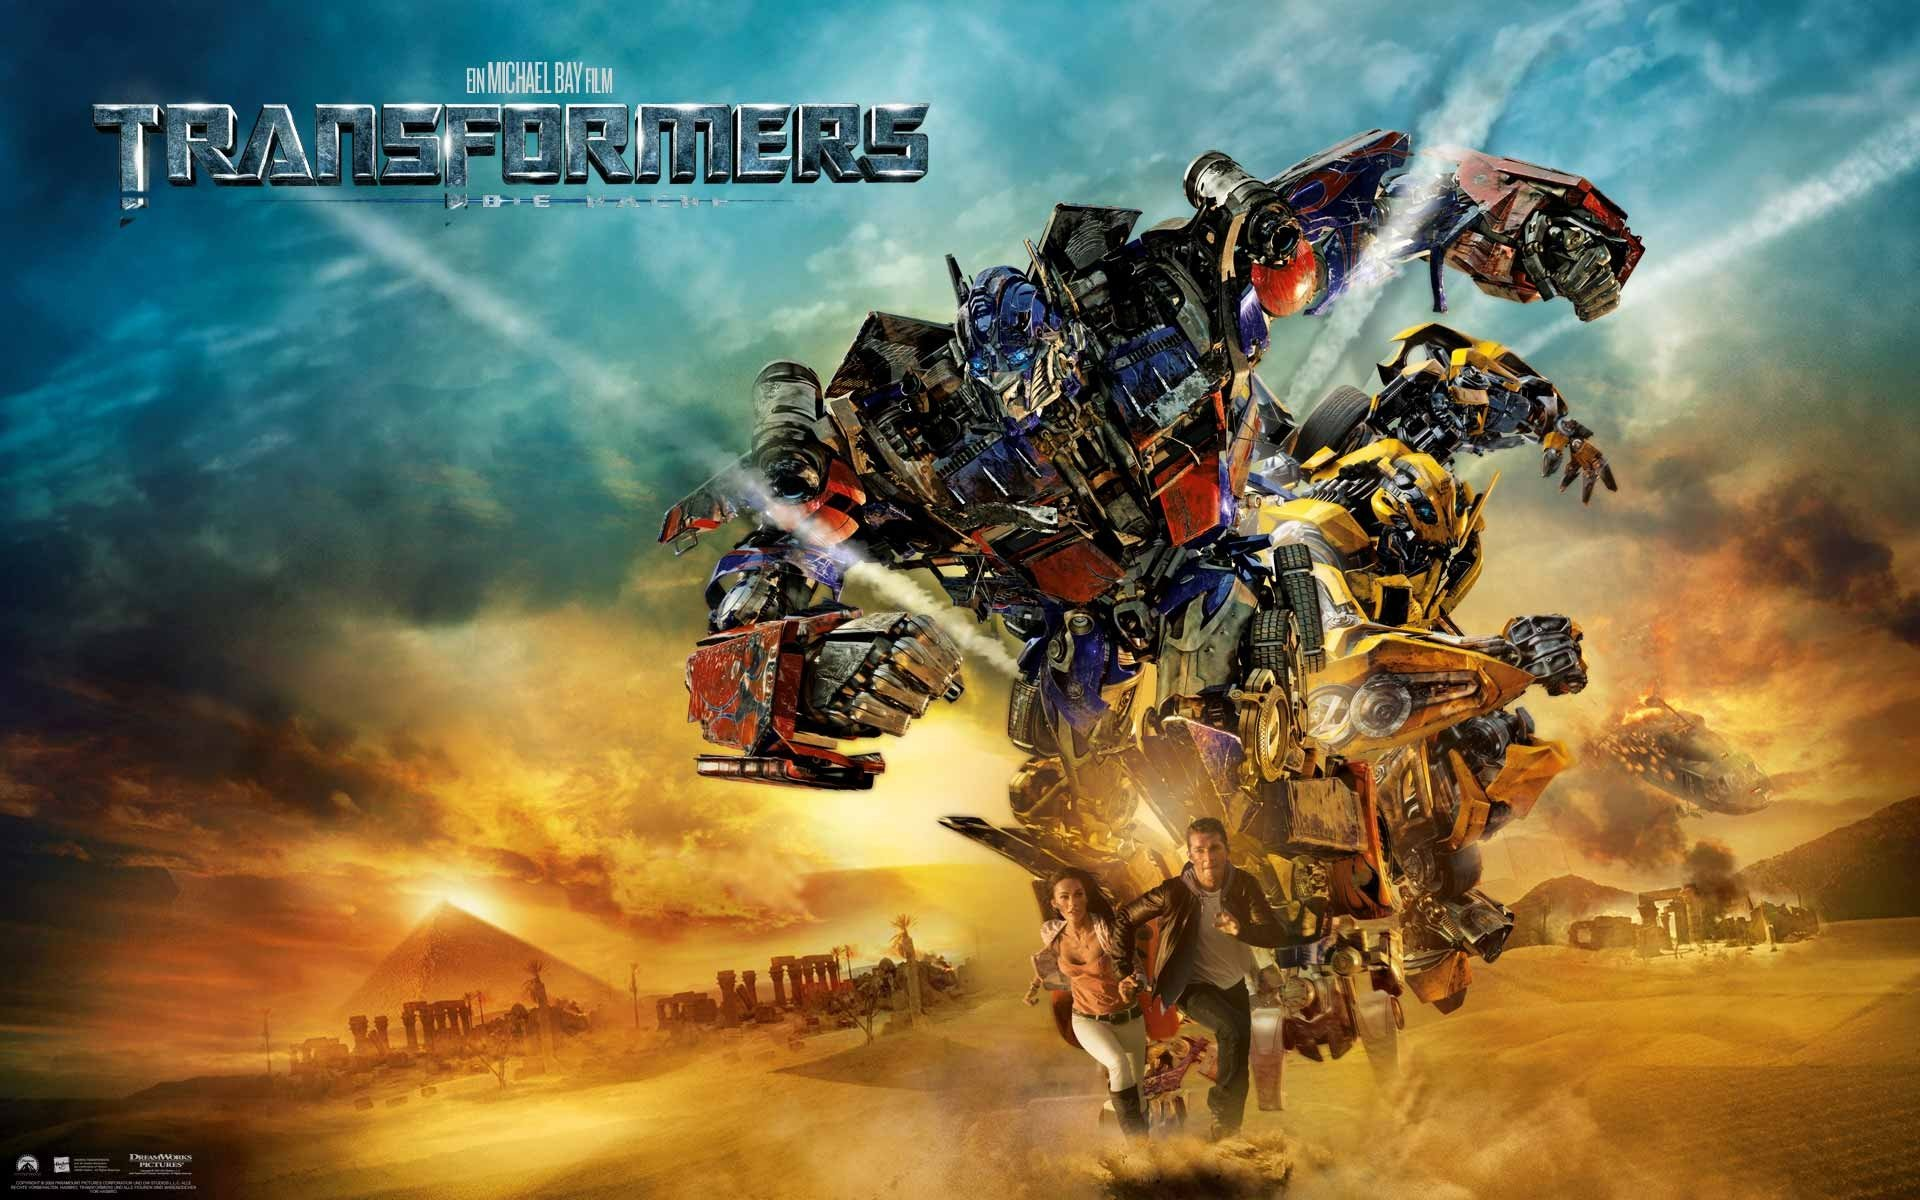 Transformers Transformers 2 Revenge Of The Fallen 2009 72803 Hd Wallpaper Backgrounds Download